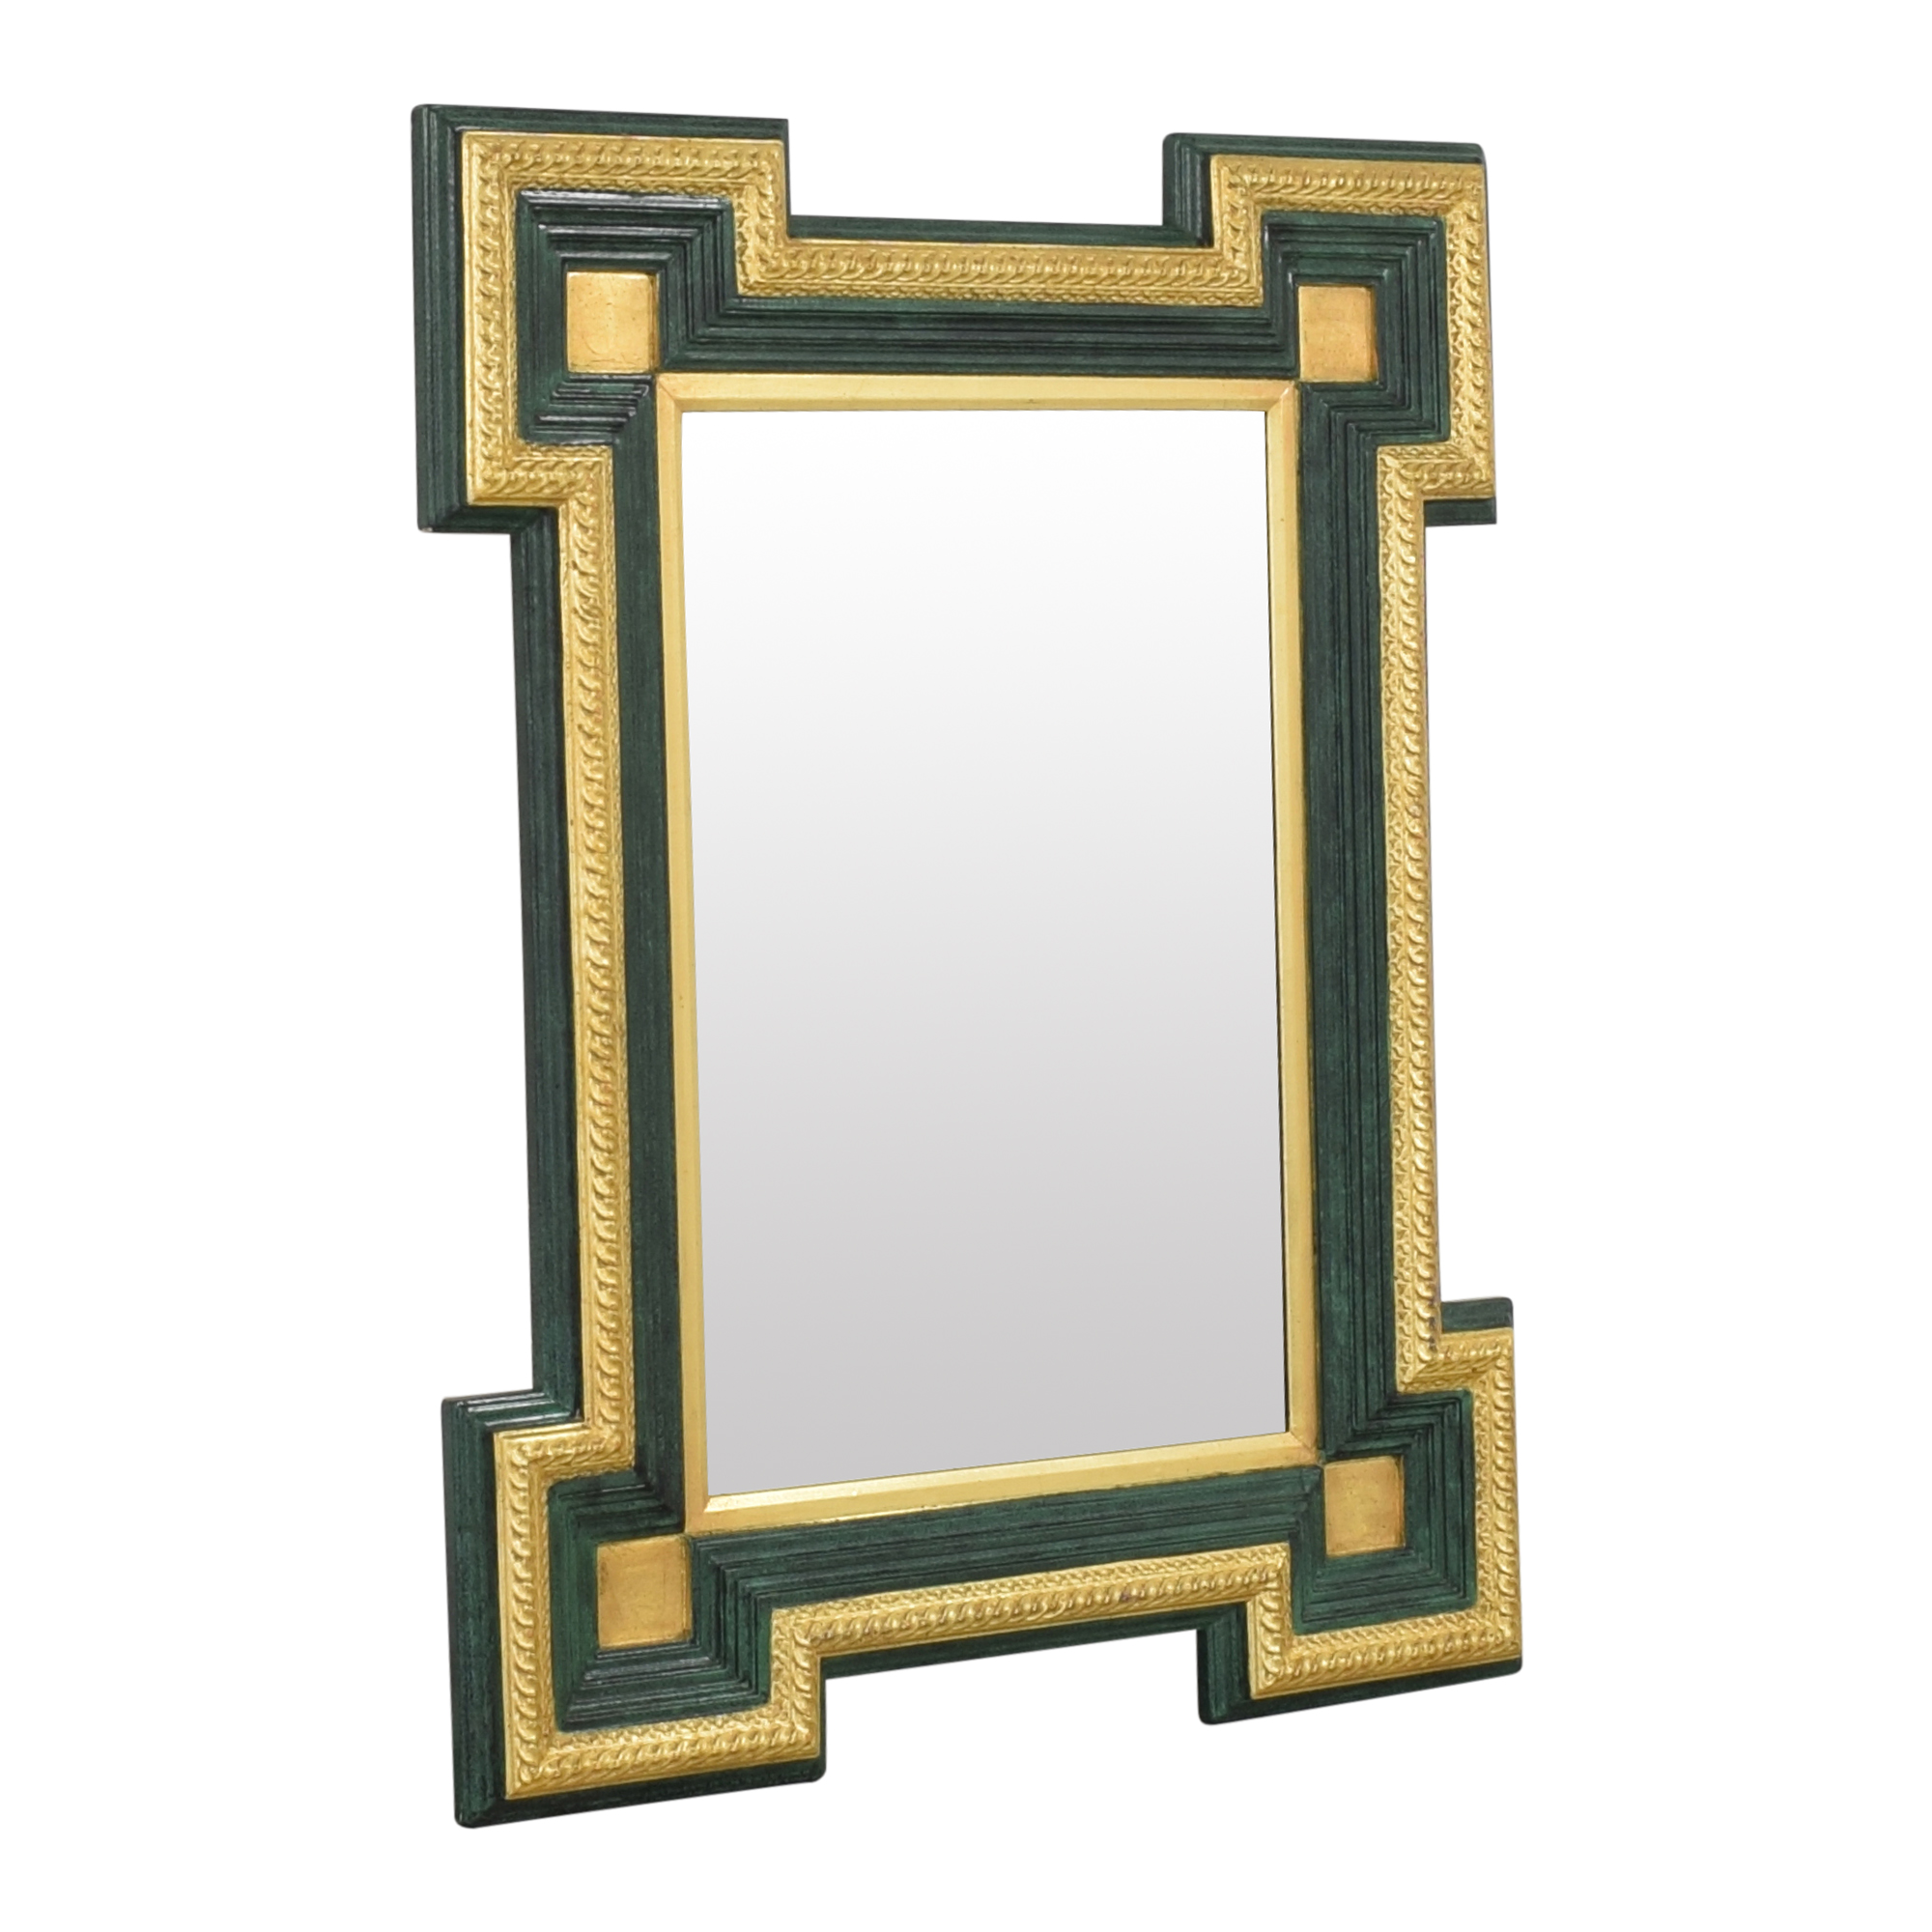 Two Tone Framed Mirror dark green and gold